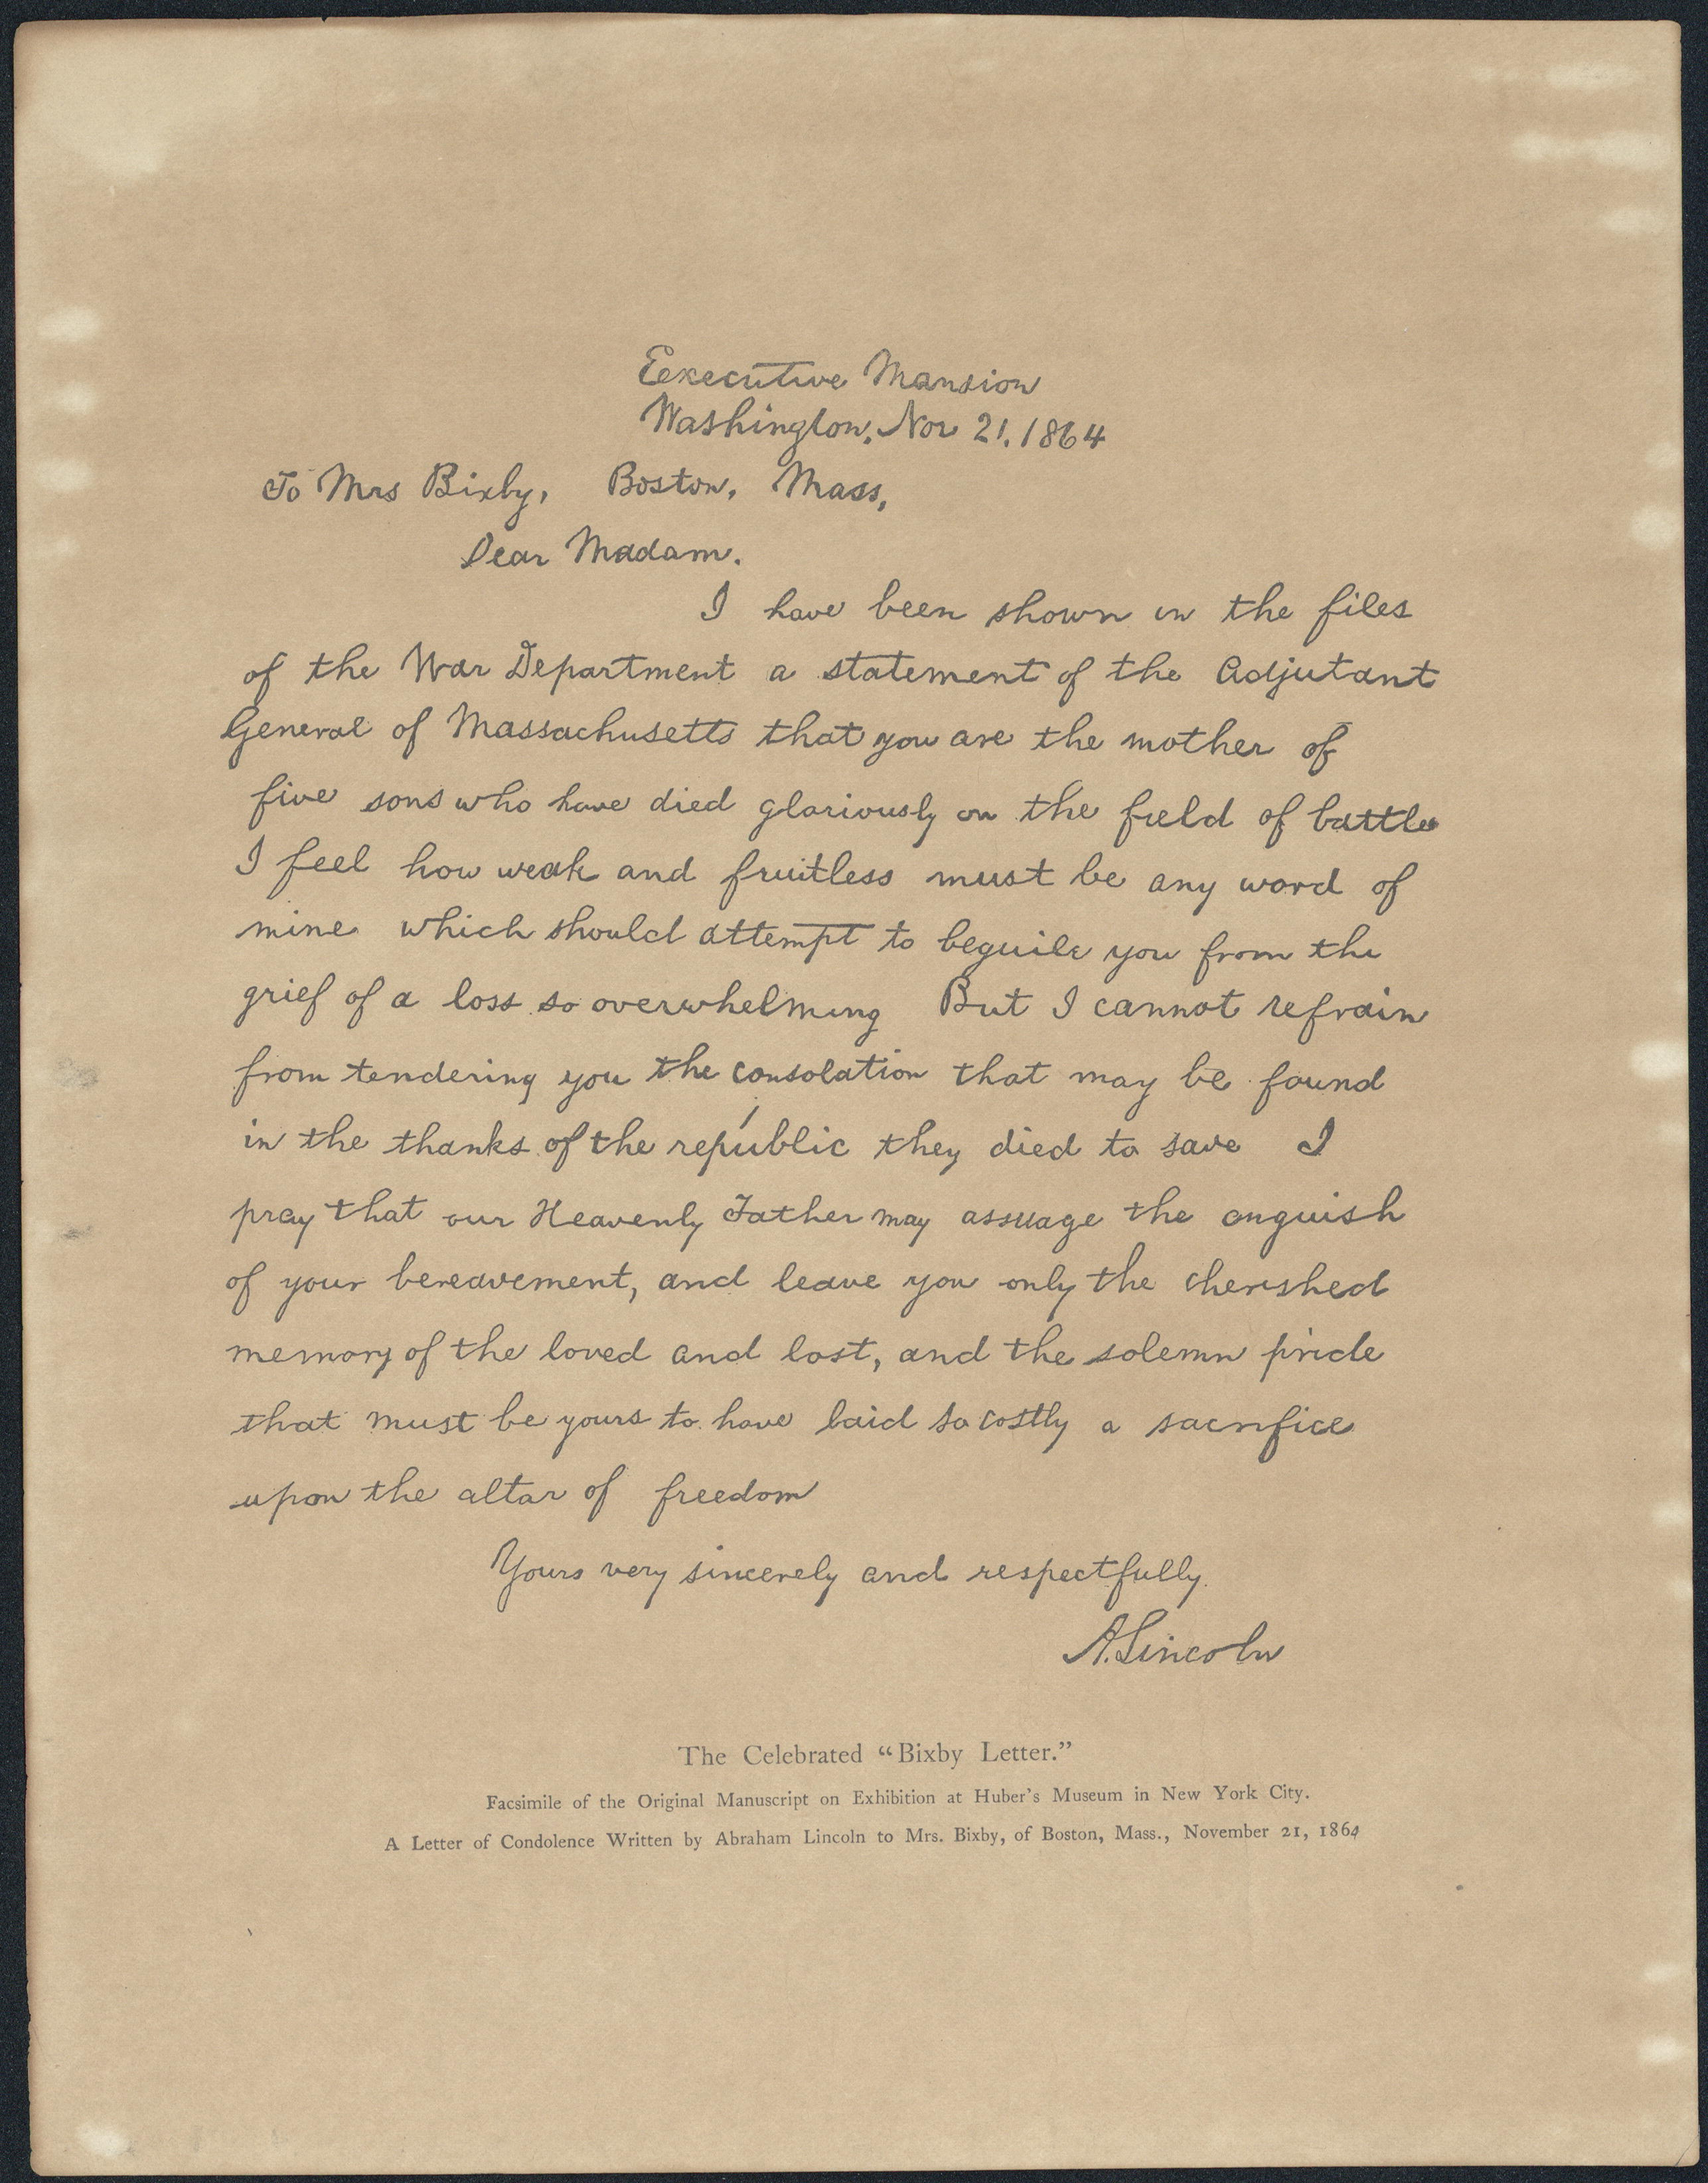 A copy of the Bixby Letter.